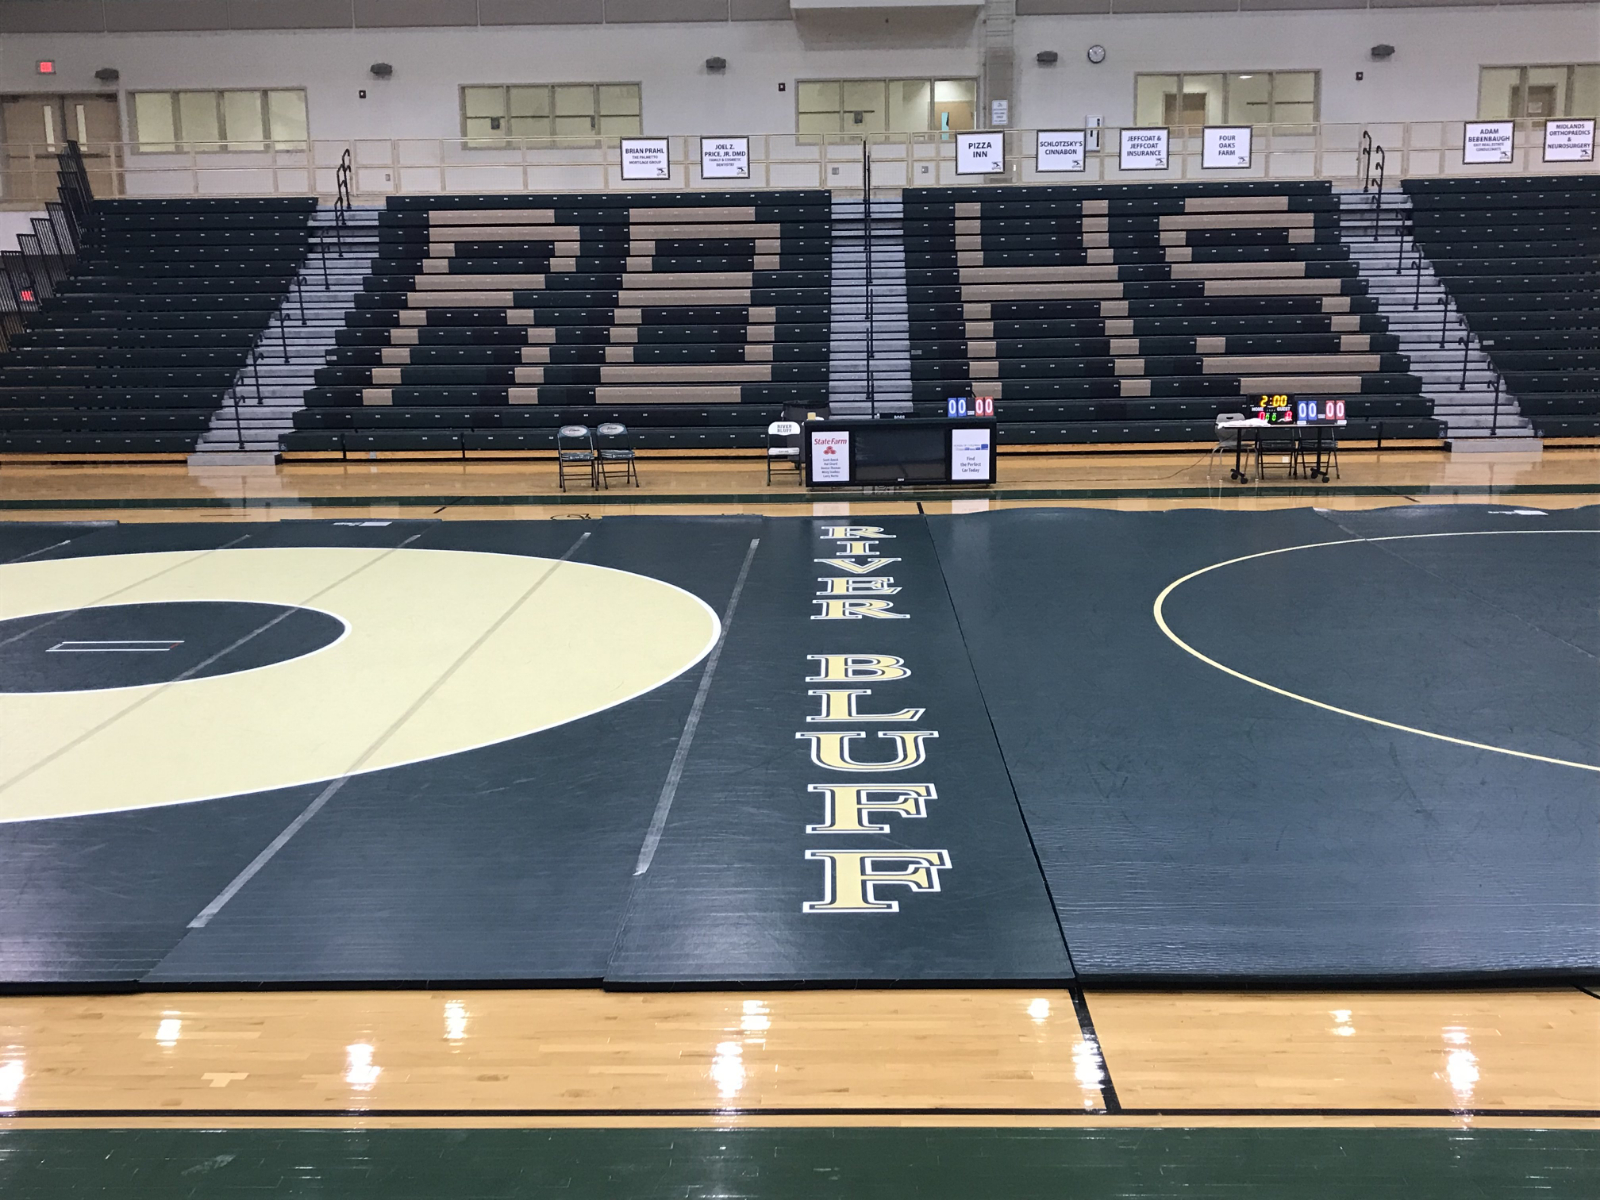 Gator Wrestling Meeting Announced for Interested High School Students